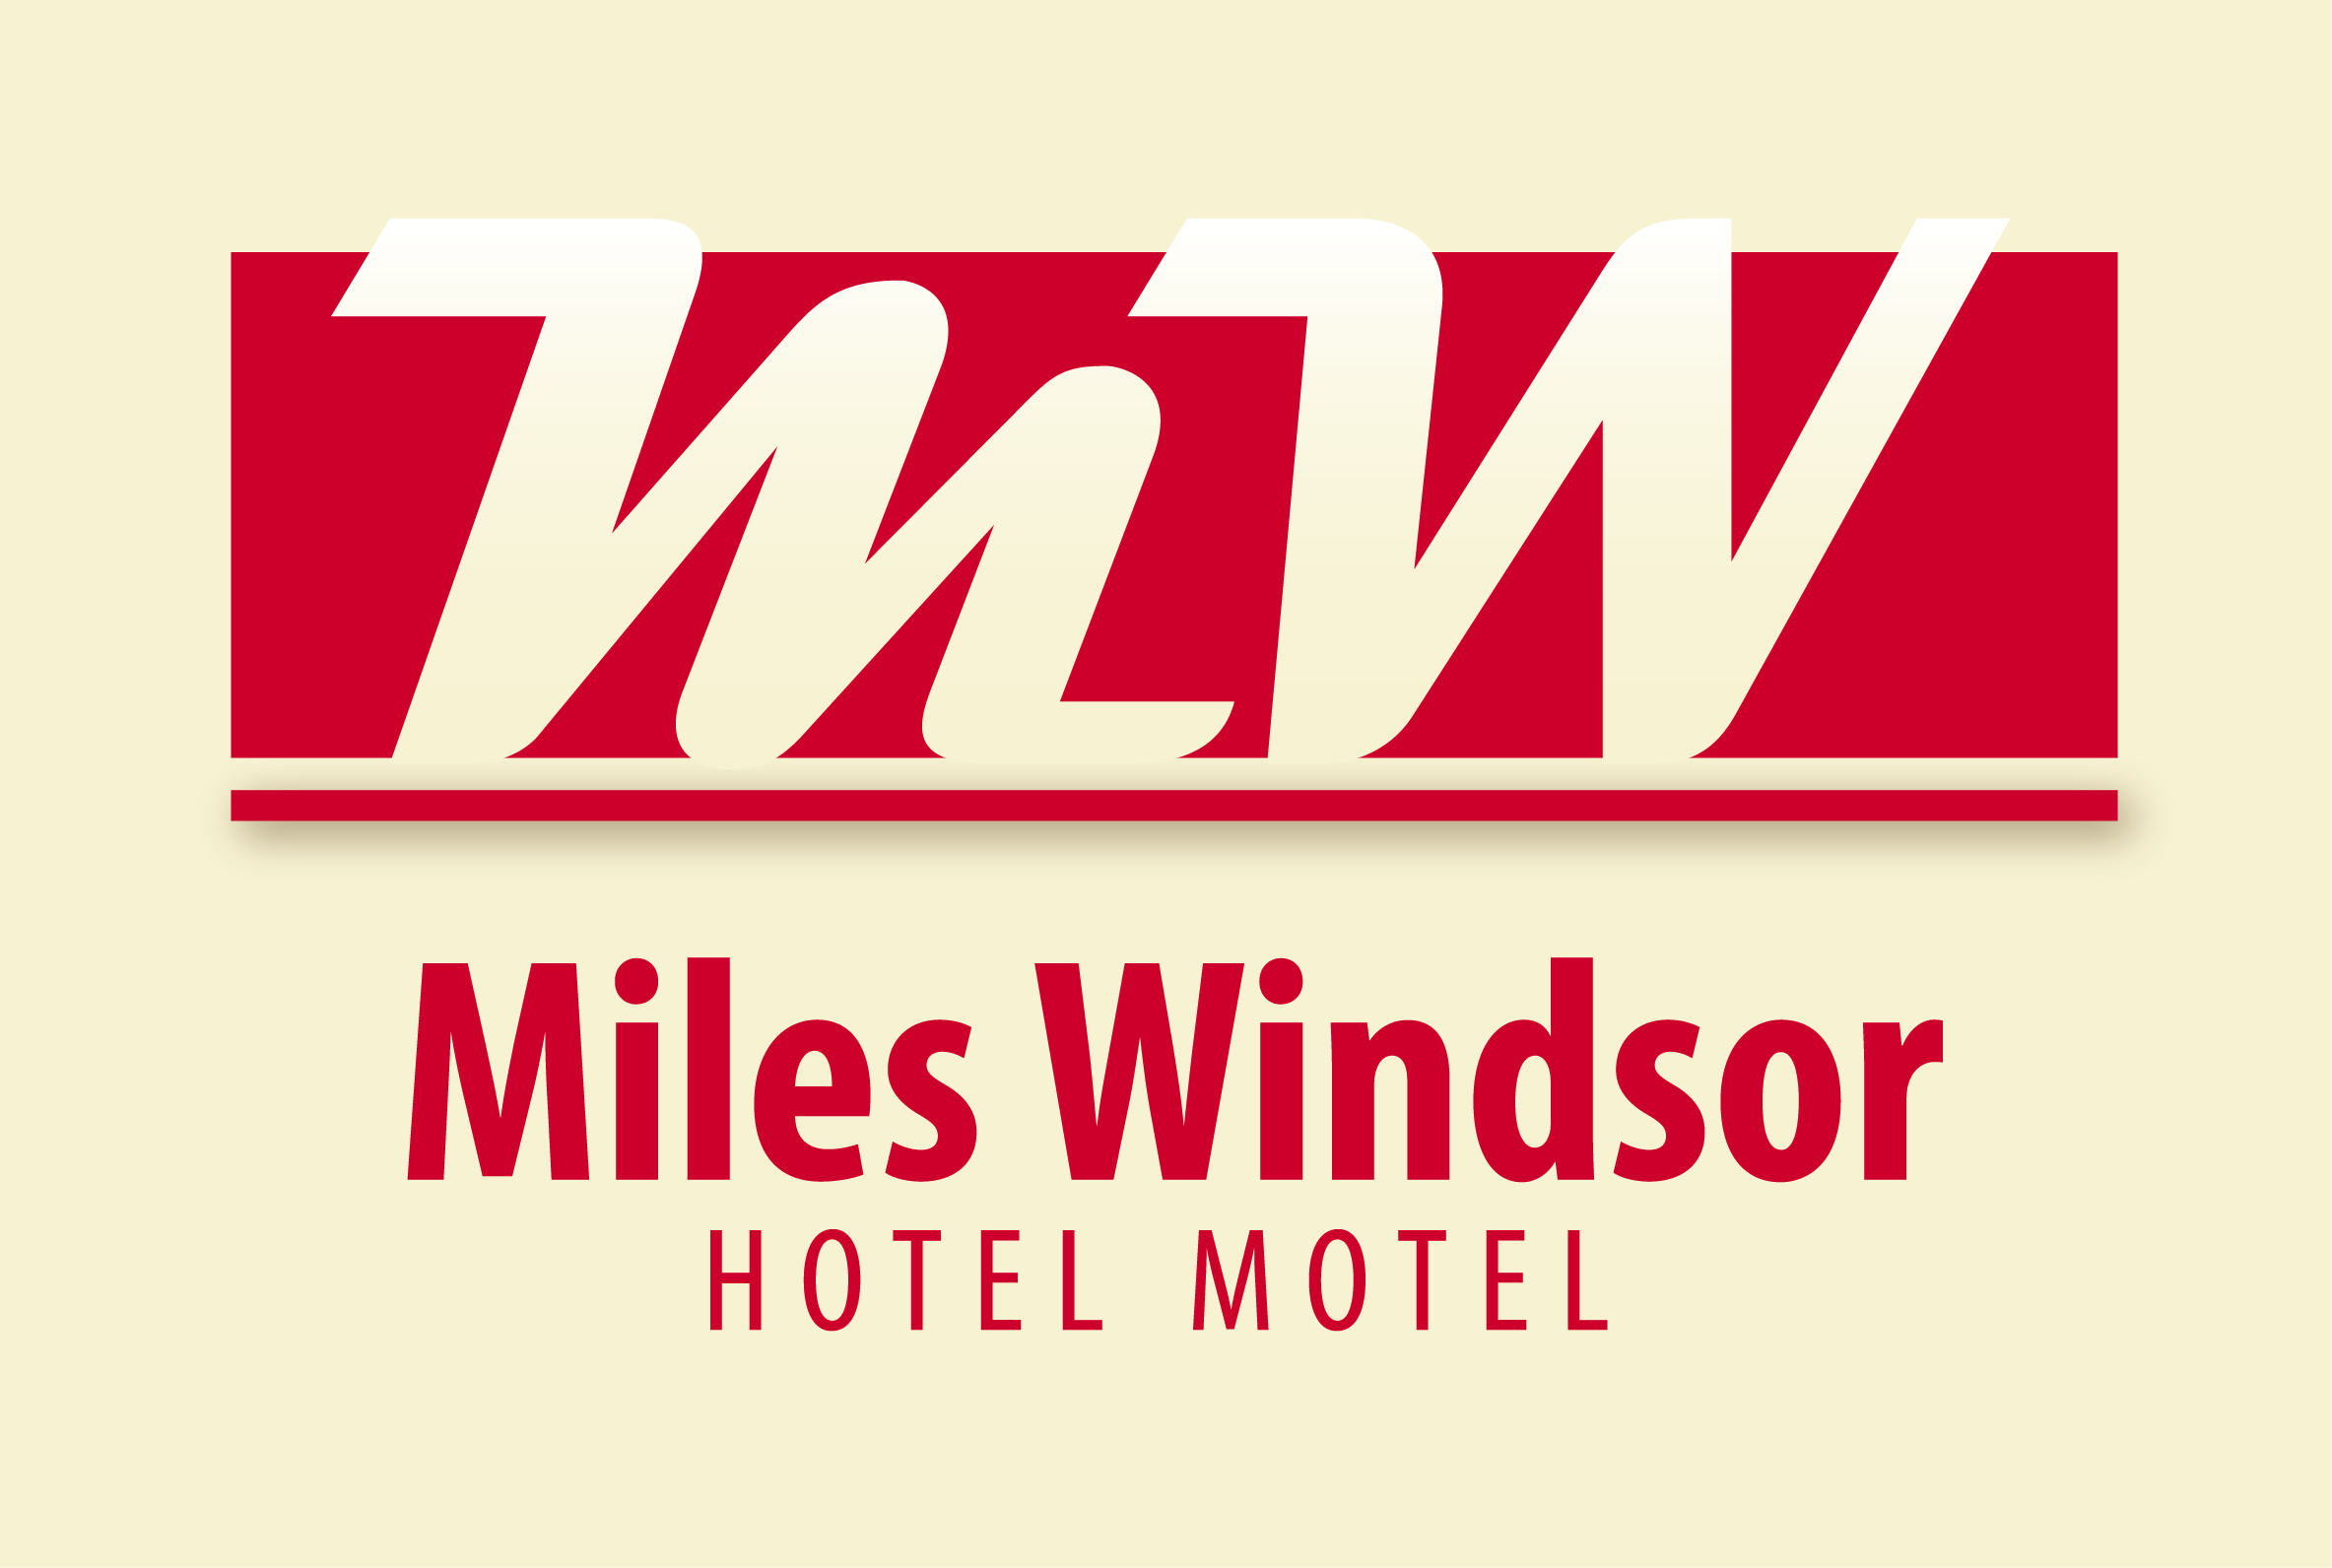 Miles Windsor Hotel Motel - Surfers Paradise Gold Coast